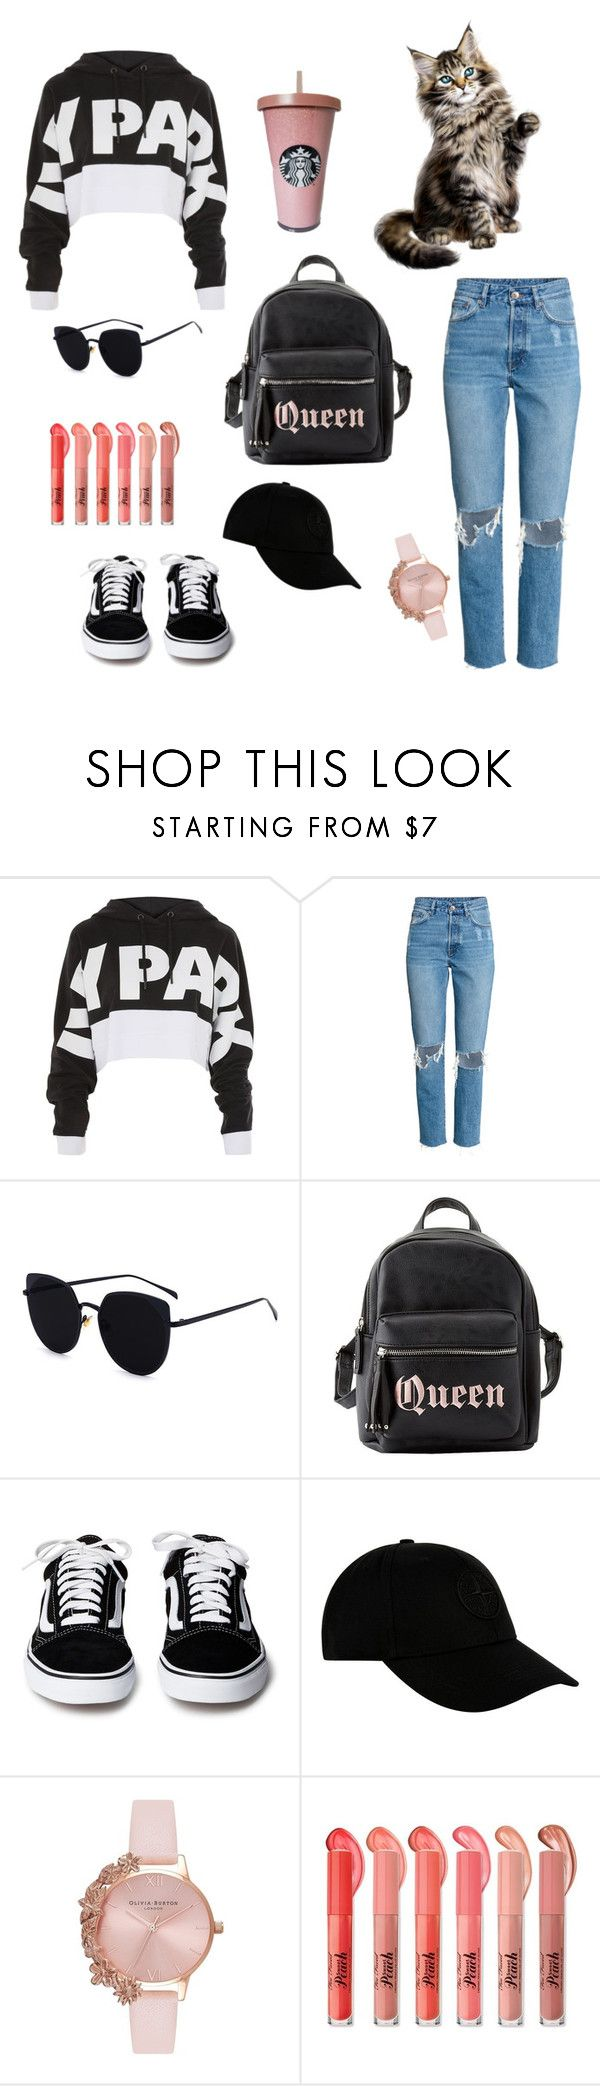 """love"" by benilounoma ❤ liked on Polyvore featuring Ivy Park, Charlotte Russe, STONE ISLAND and Olivia Burton"